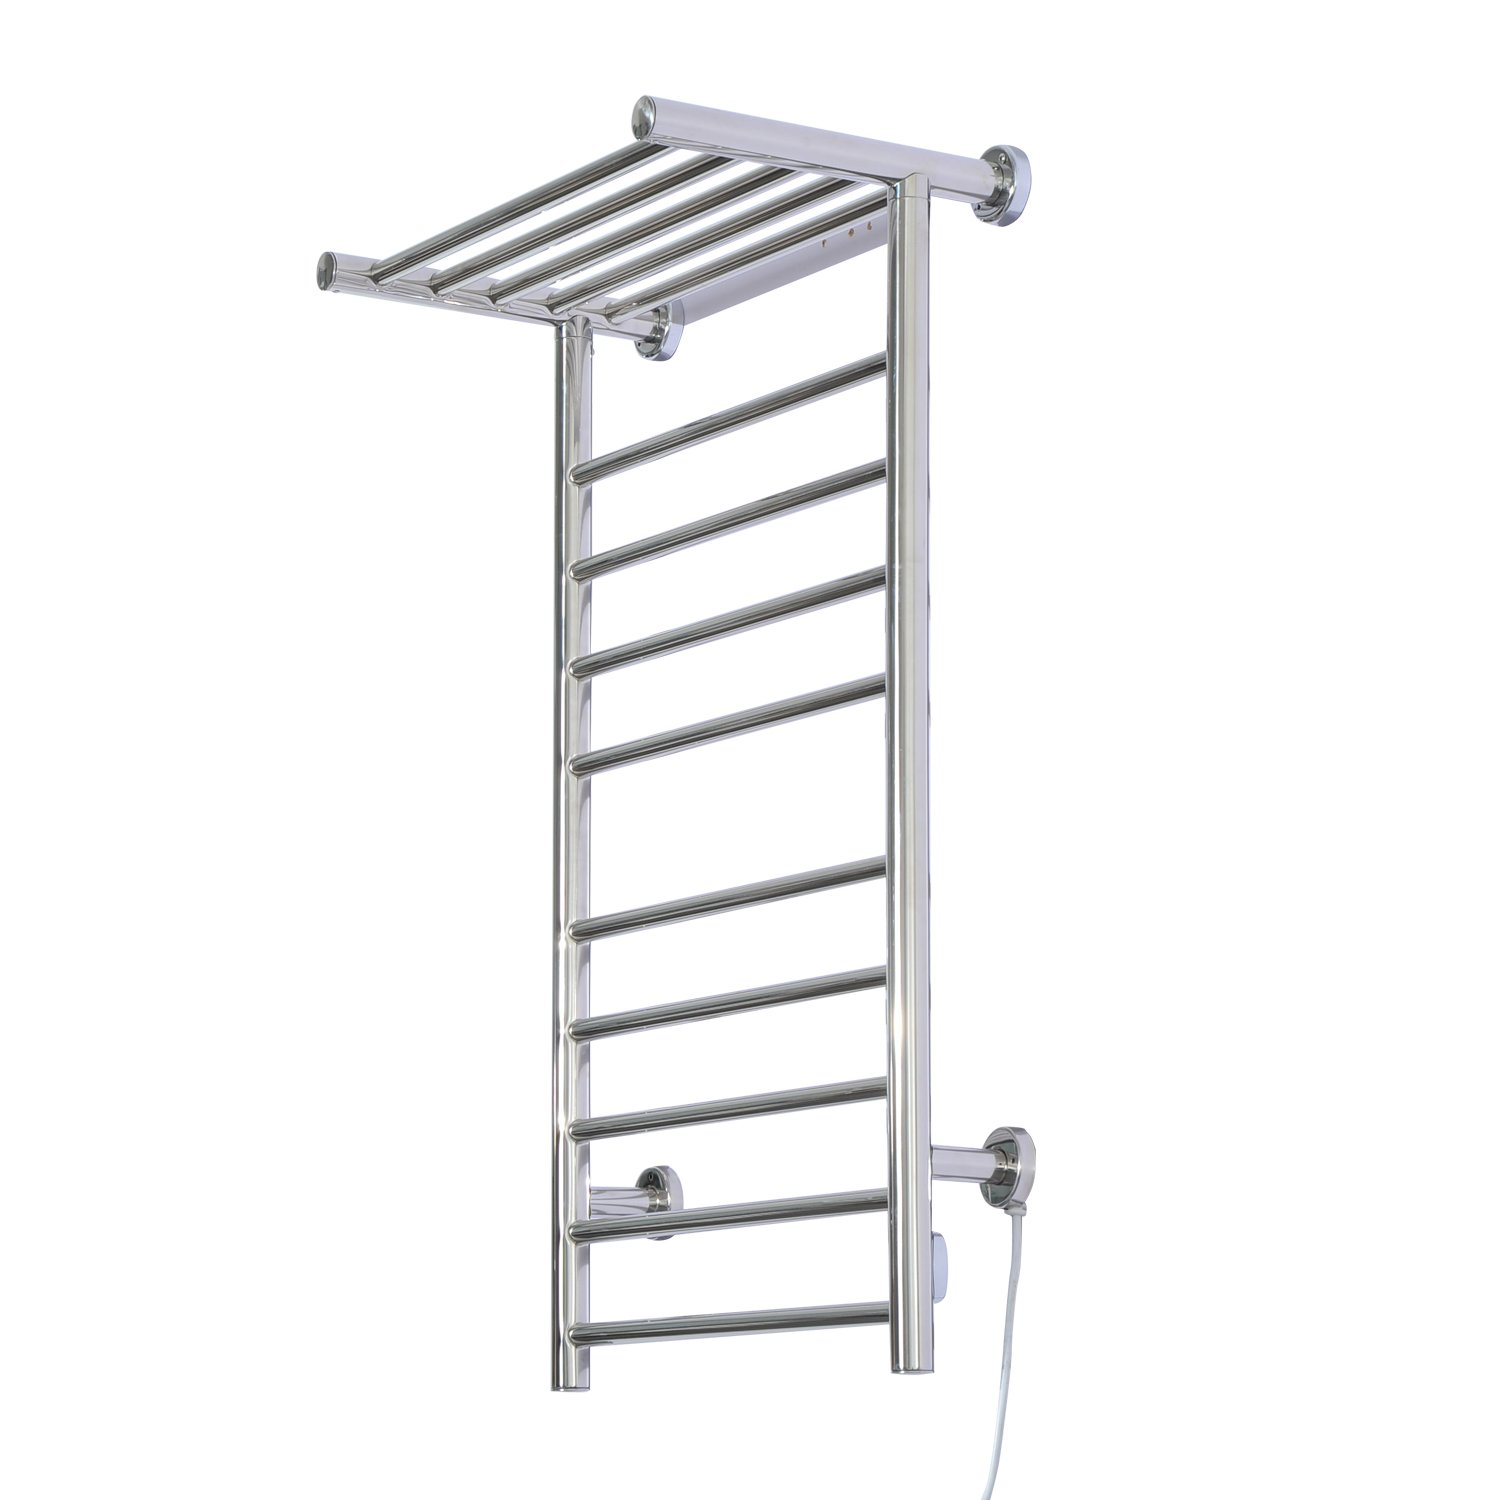 HomCom 9-Bar Stainless Steel Wall Mounted Heated Towel Warmer Rack w/ Shelf